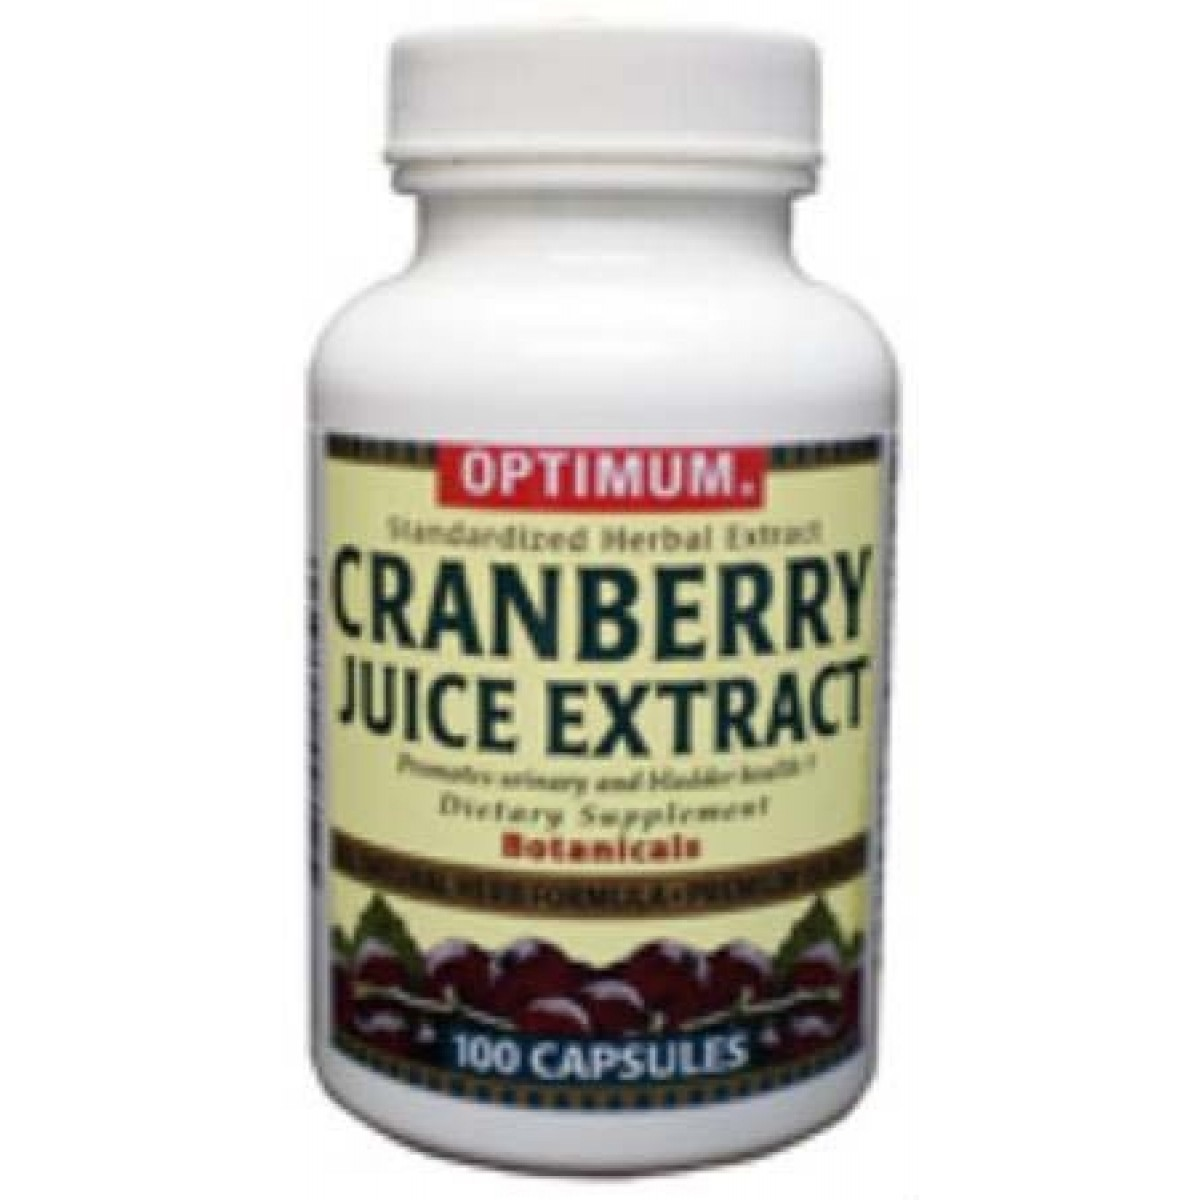 Cranberry juice pills